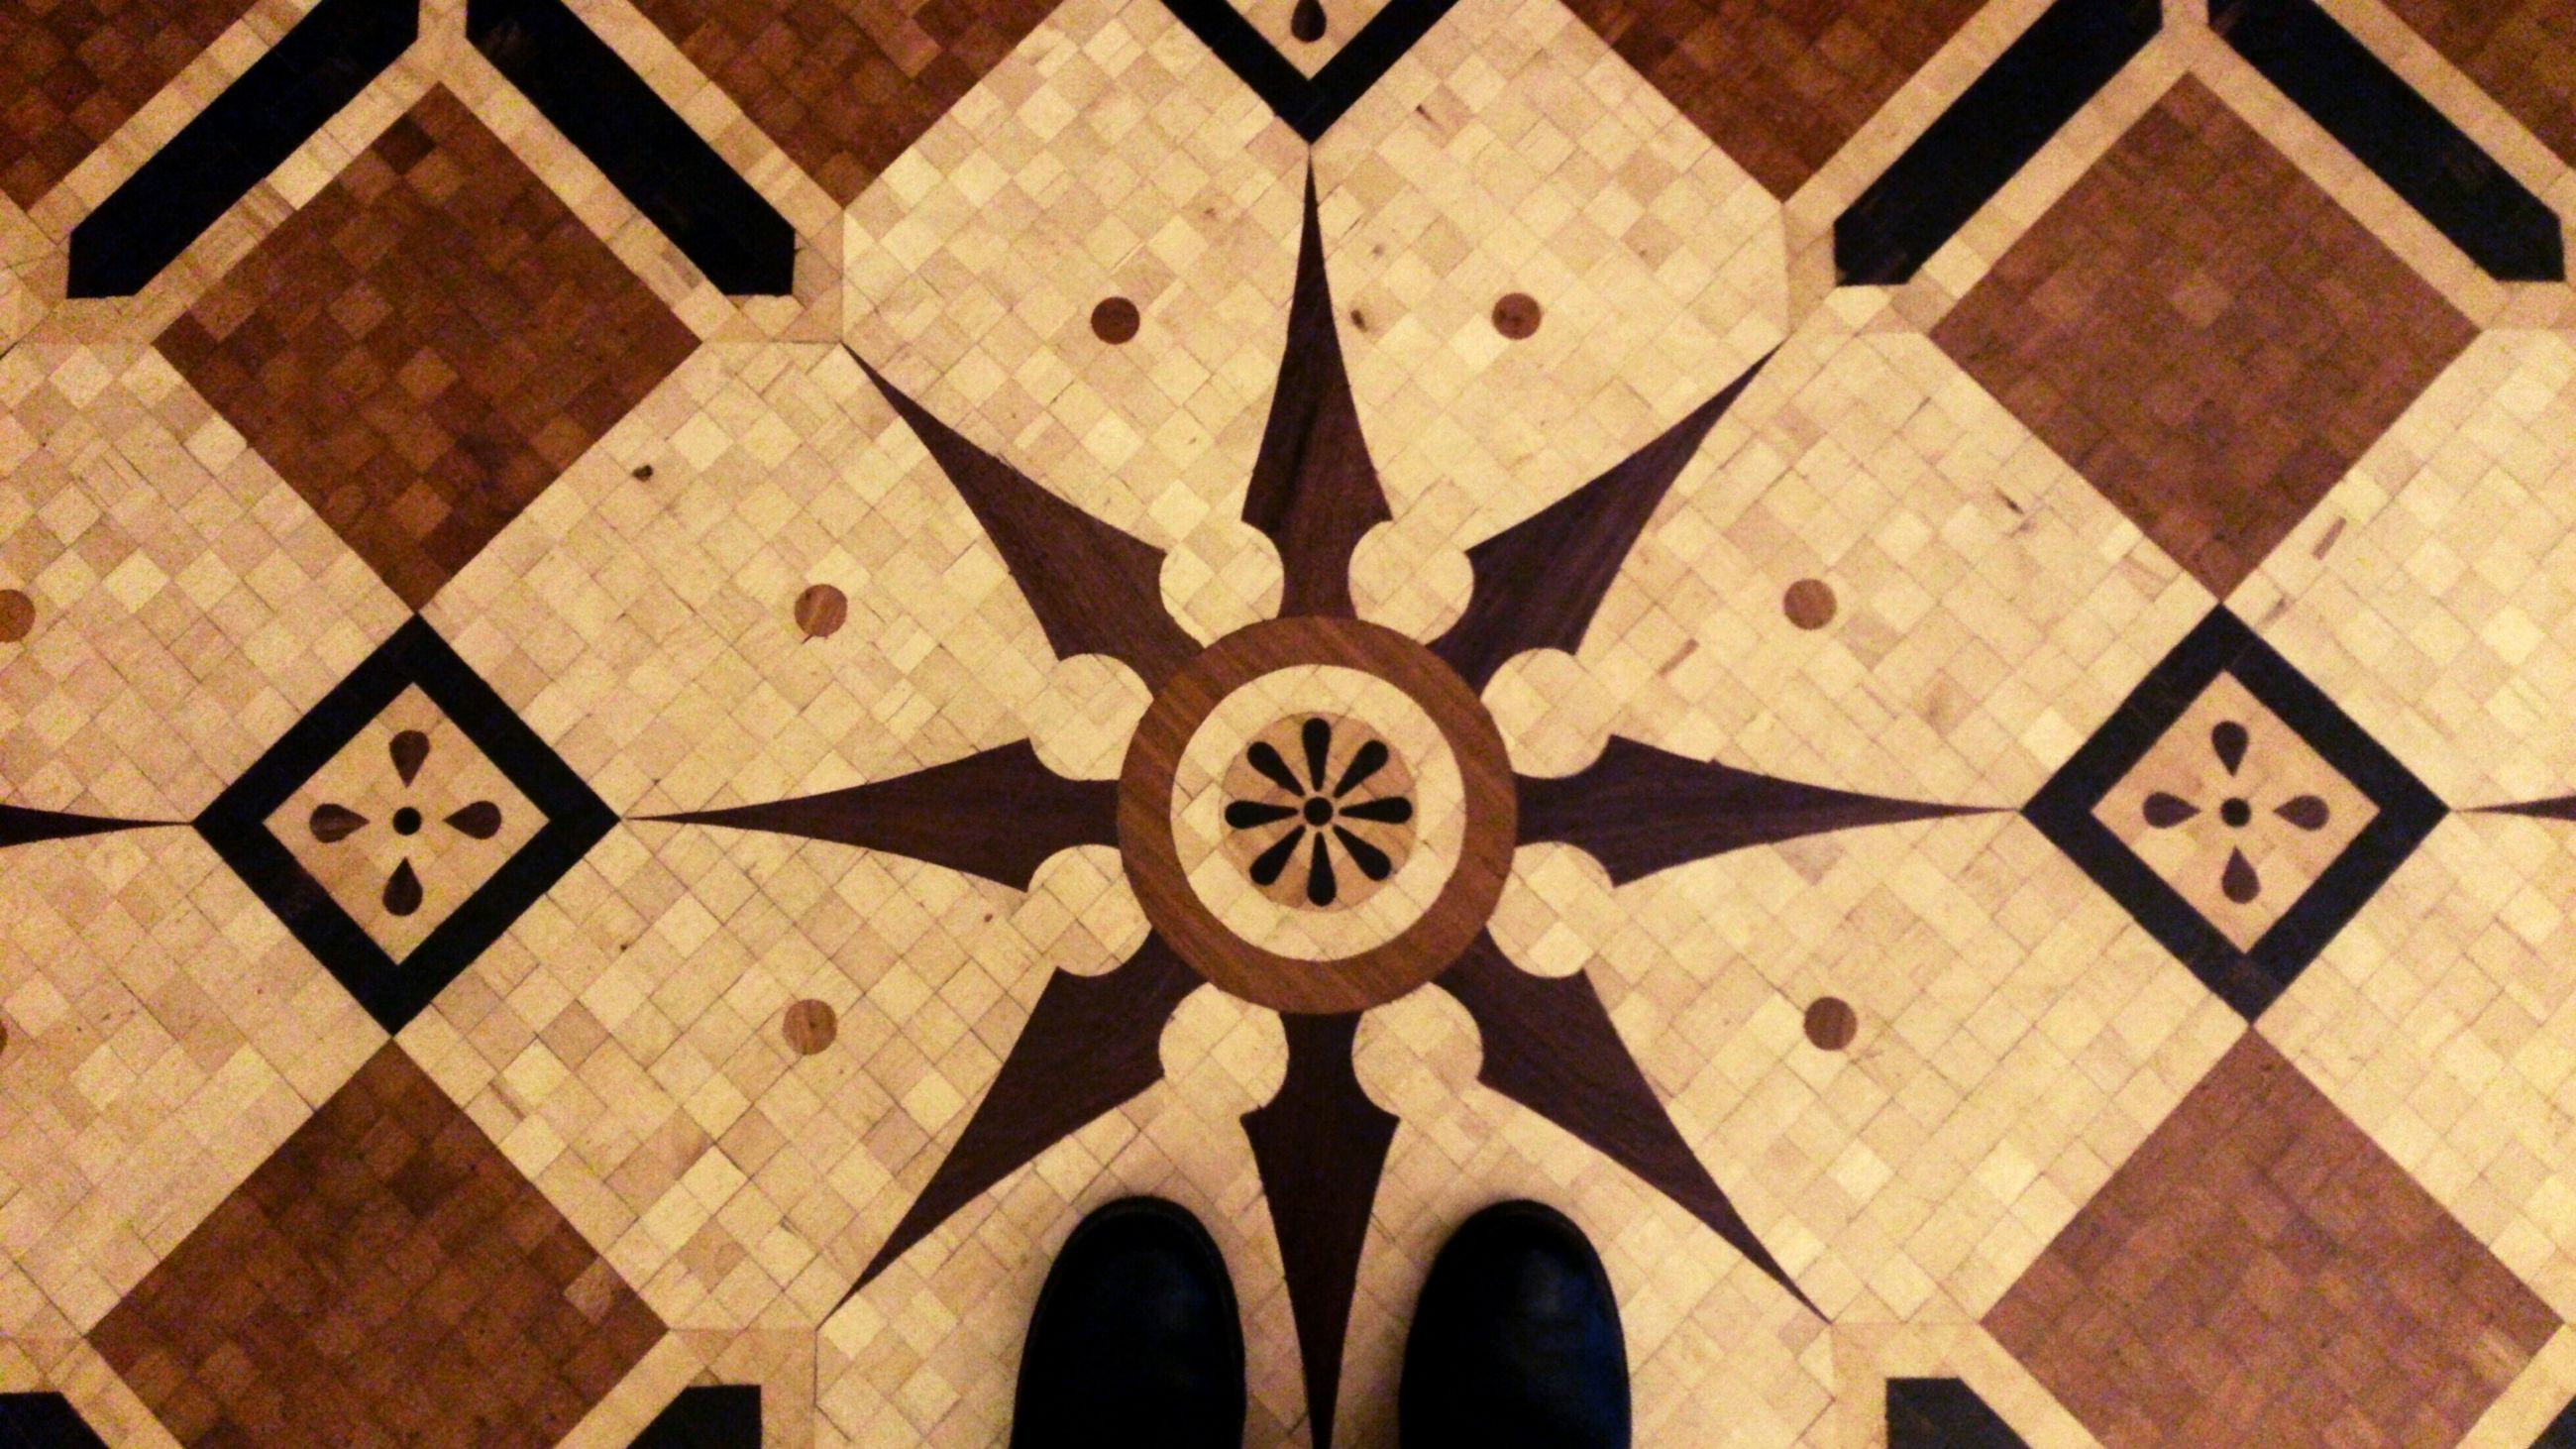 indoors, pattern, high angle view, circle, full frame, backgrounds, geometric shape, design, architecture, built structure, ceiling, flooring, repetition, tiled floor, directly above, shape, no people, art and craft, tile, in a row